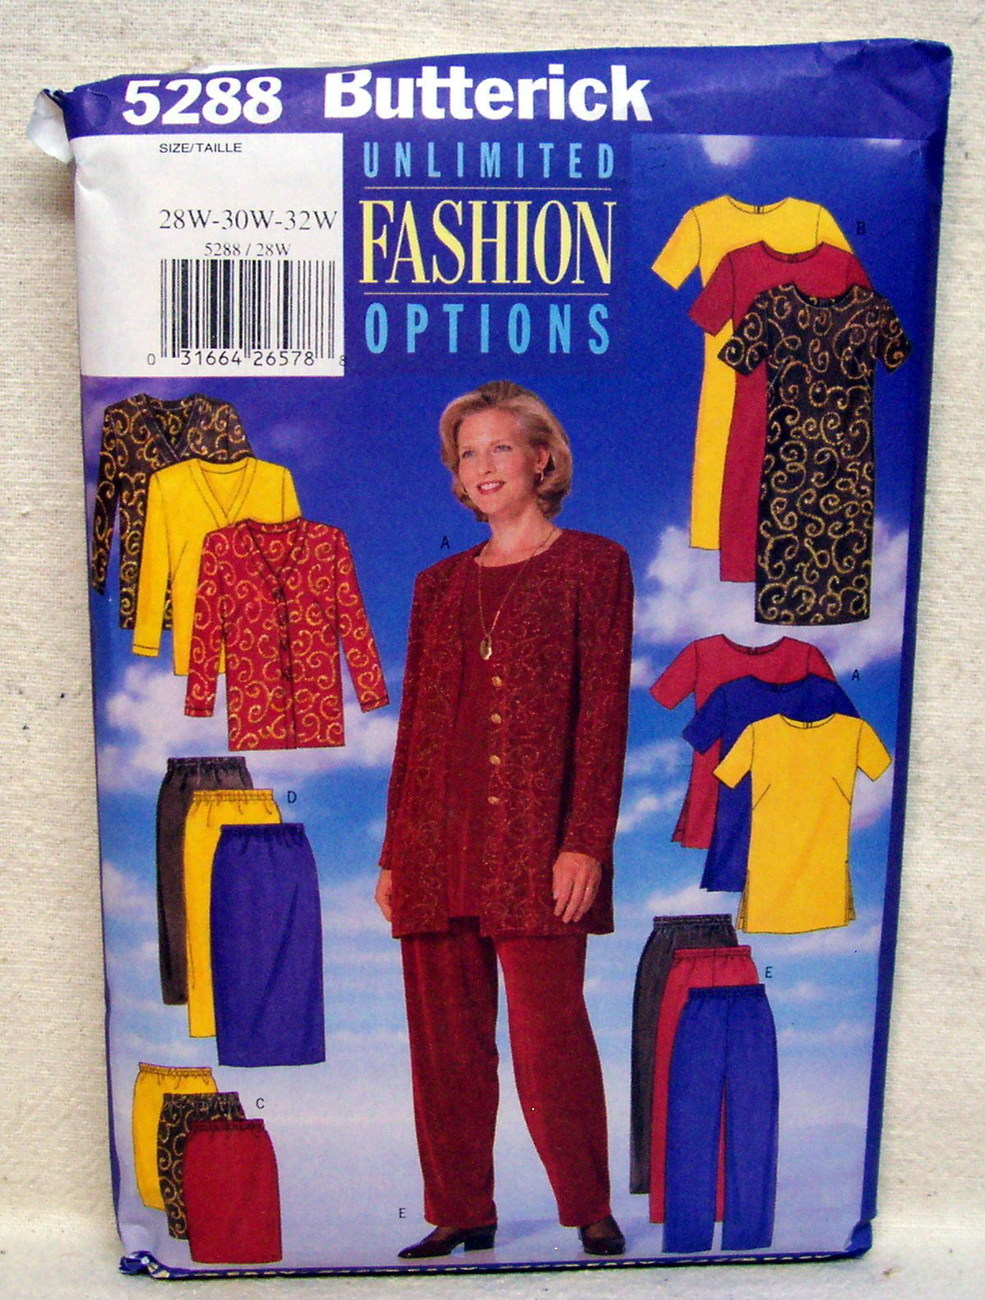 Primary image for Butterick PLUS SZ.#5288 Jacket Dress Tunic Skirt Pant Sz 28W-30W-32W